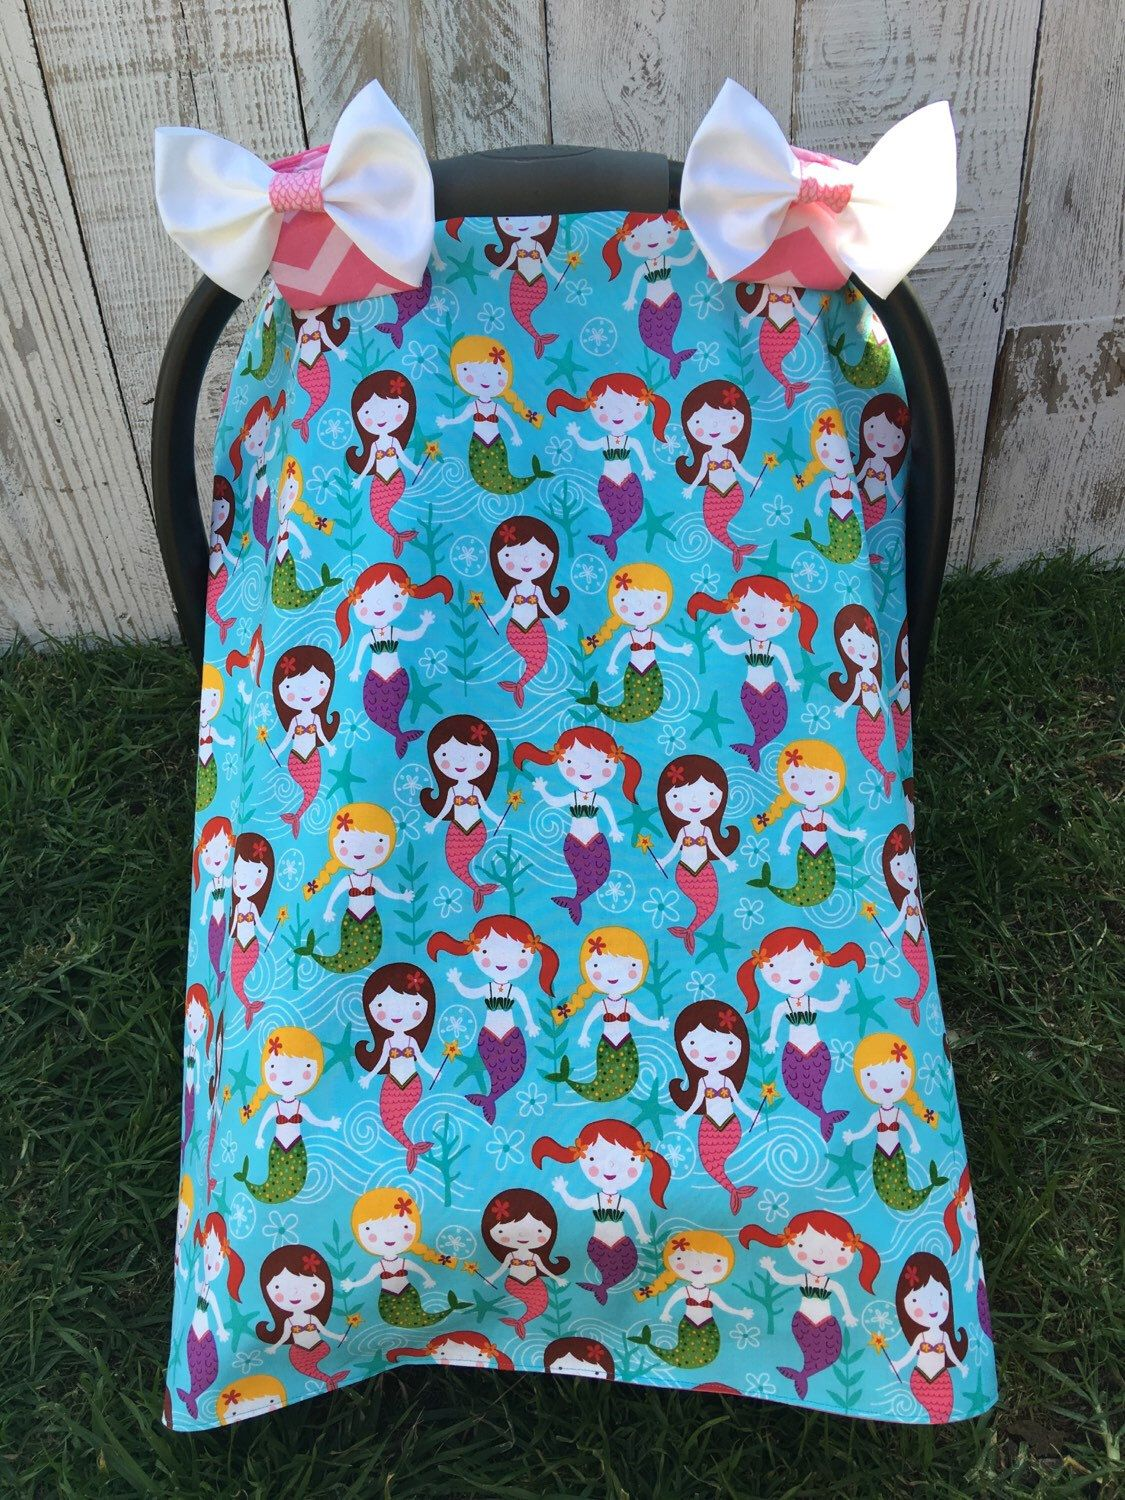 Car Seat Canopy Car Seat Cover Mermaid Infant Carrier Covers Carseat Tent Under the Sea Baby girl Bows The Little Mermaid : little mermaid tent - memphite.com